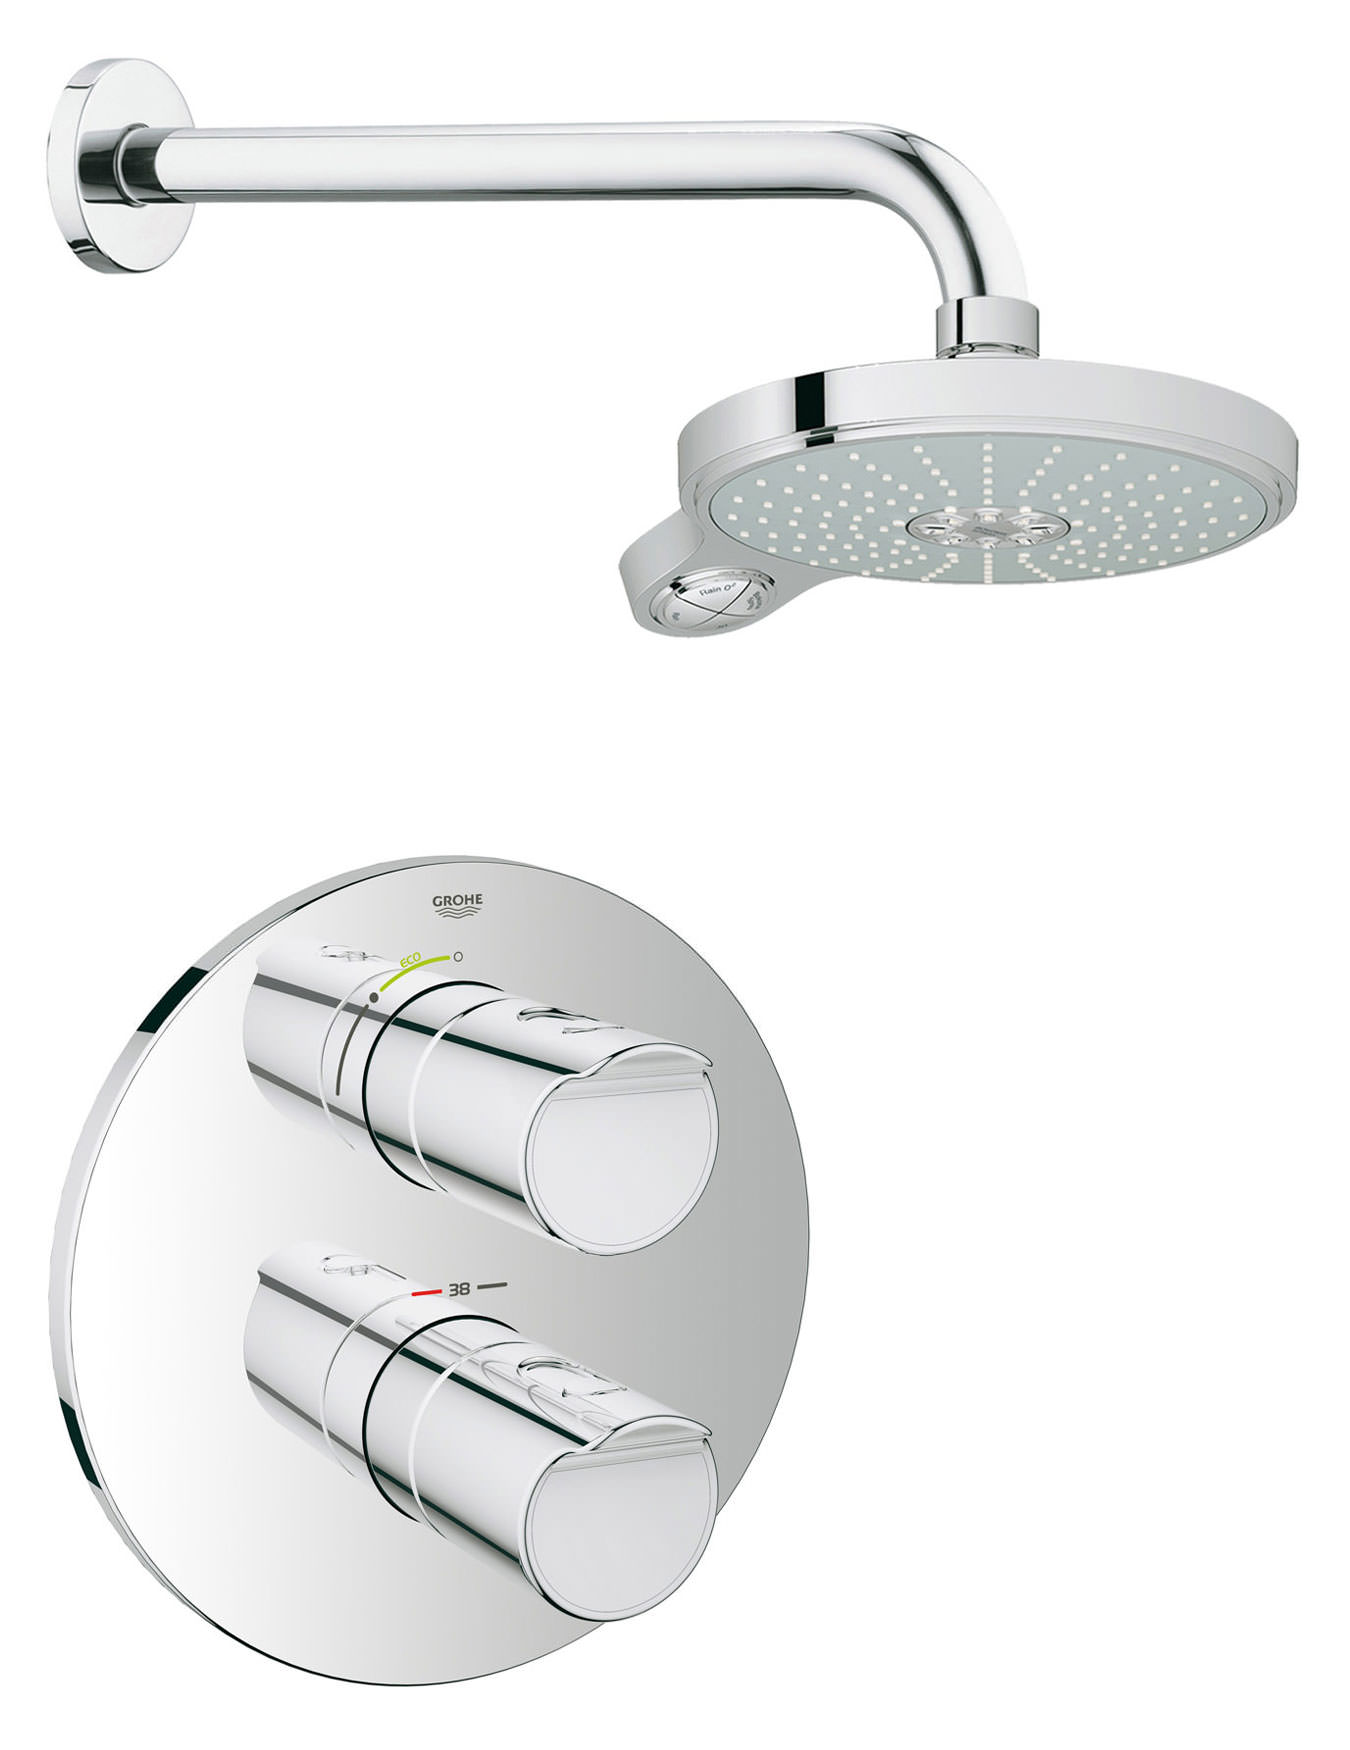 grohe grohtherm 2000 new plus power and soul shower solution pack 2. Black Bedroom Furniture Sets. Home Design Ideas